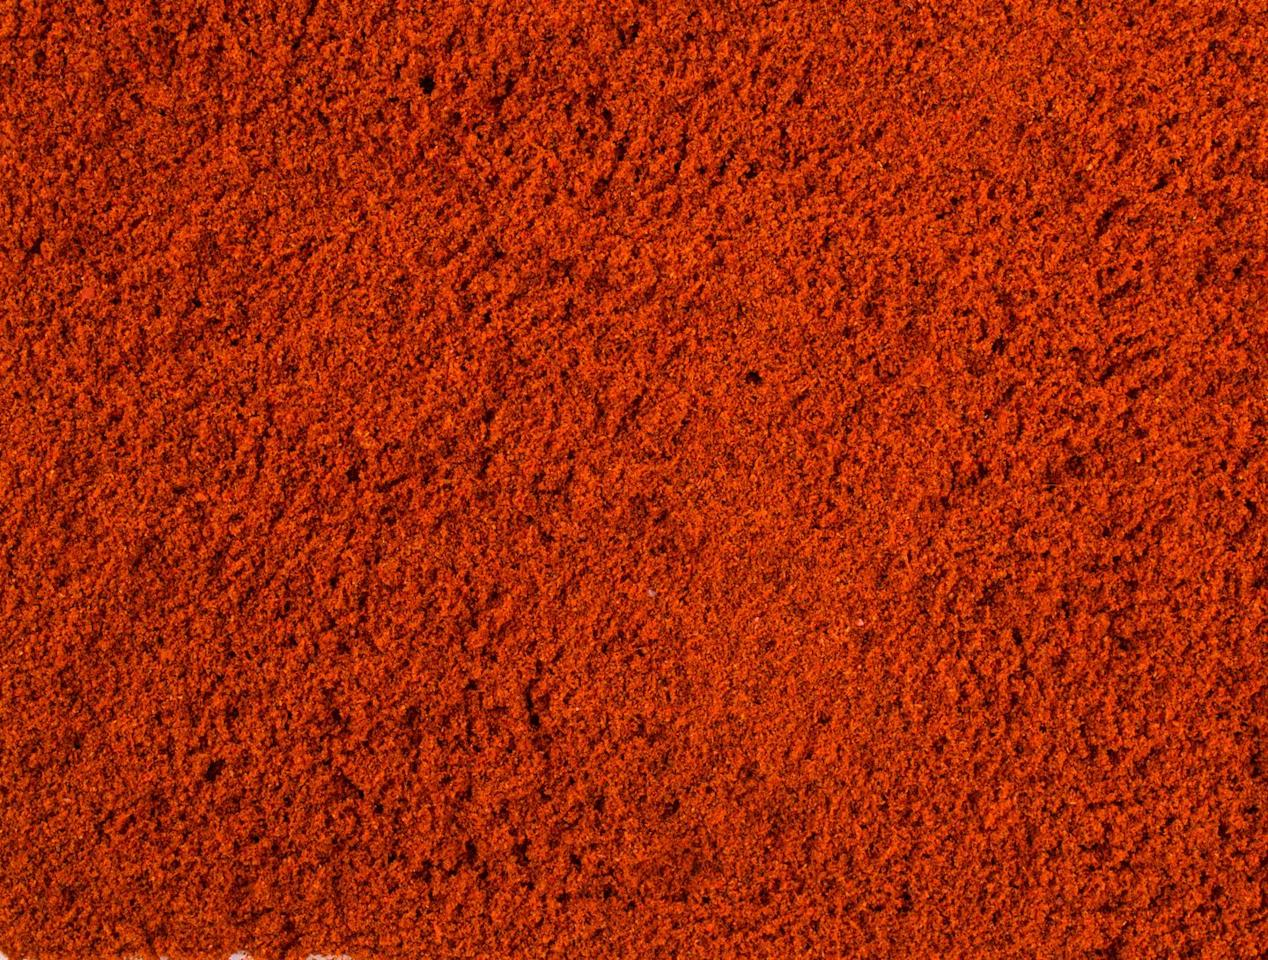 "<p>Cayenne Pepper adds sweet-spicy heat to anything, and it's used in a variety of cuisines. Add a pinch to bean stews, <a href=""https://www.delish.com/uk/cooking/recipes/a28886316/best-homemade-chilli-recipe/"" target=""_blank"">chilli con carne</a>, or even sprinkle on top of <a href=""https://www.delish.com/uk/cooking/recipes/a30267815/tuna-pasta-bake/"" target=""_blank"">pasta bakes</a> and <a href=""https://www.delish.com/uk/cooking/recipes/g30980496/best-macaroni-cheese-recipes/"" target=""_blank"">macaroni cheese</a>. </p>"